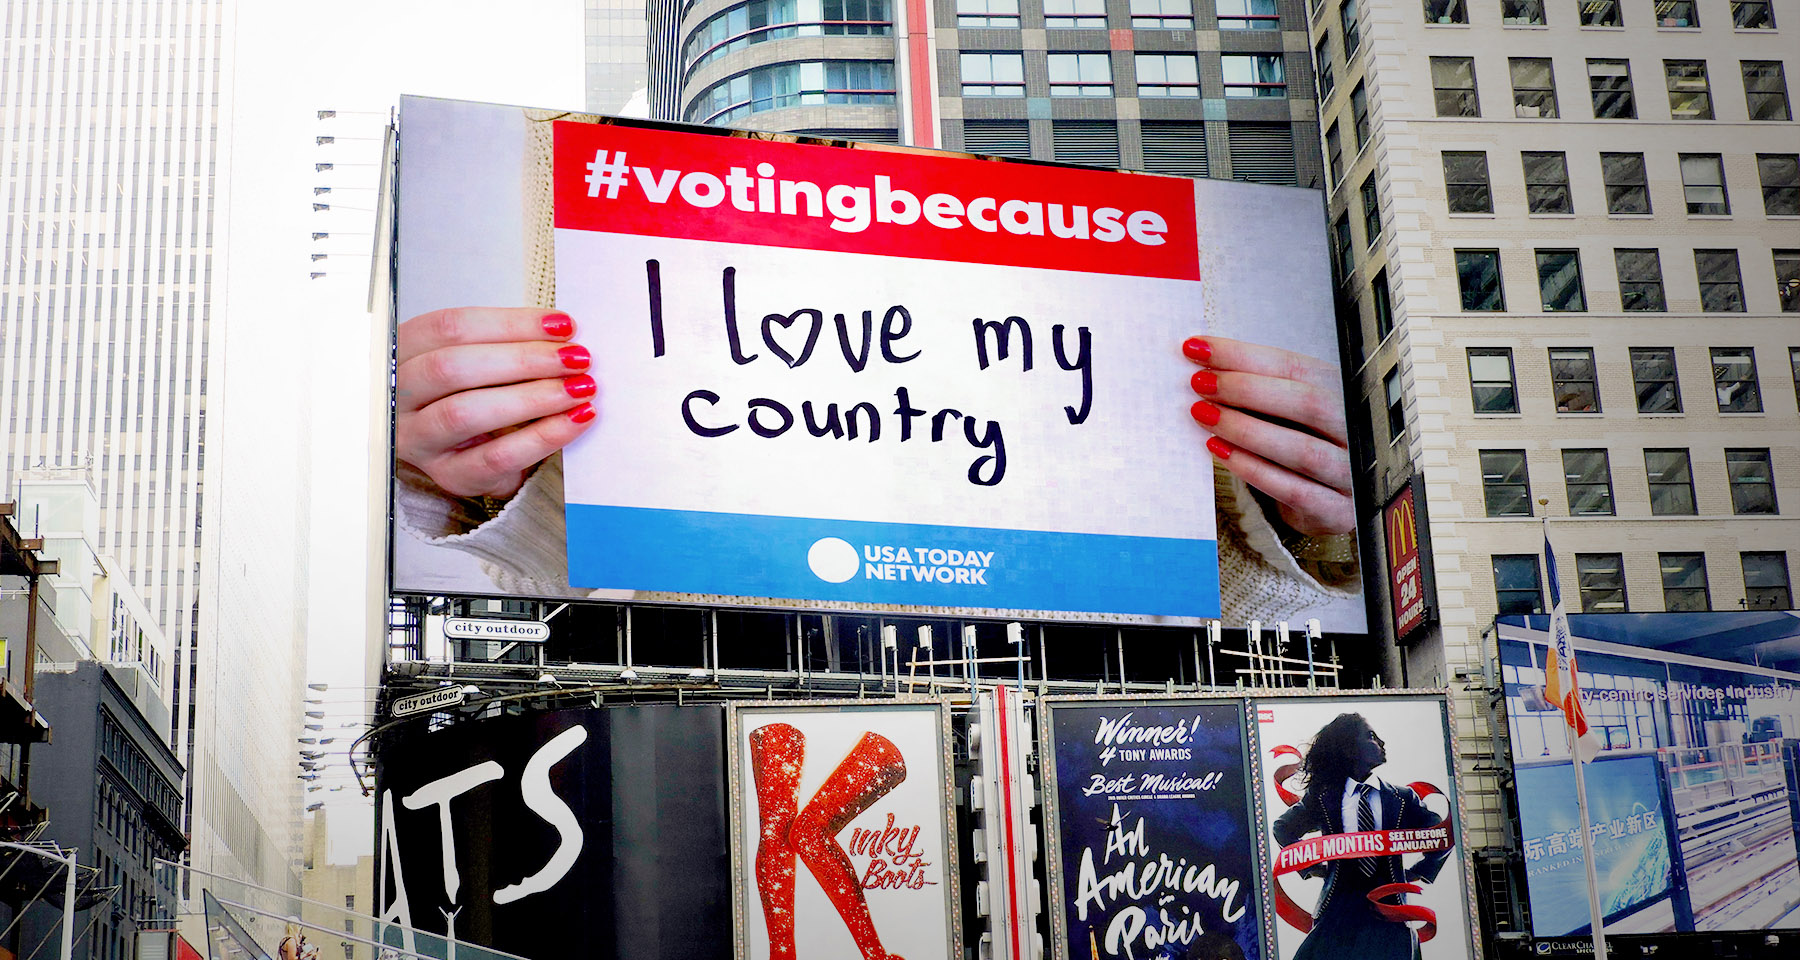 USA TODAY voter campaign generates millions in pageviews, social shares